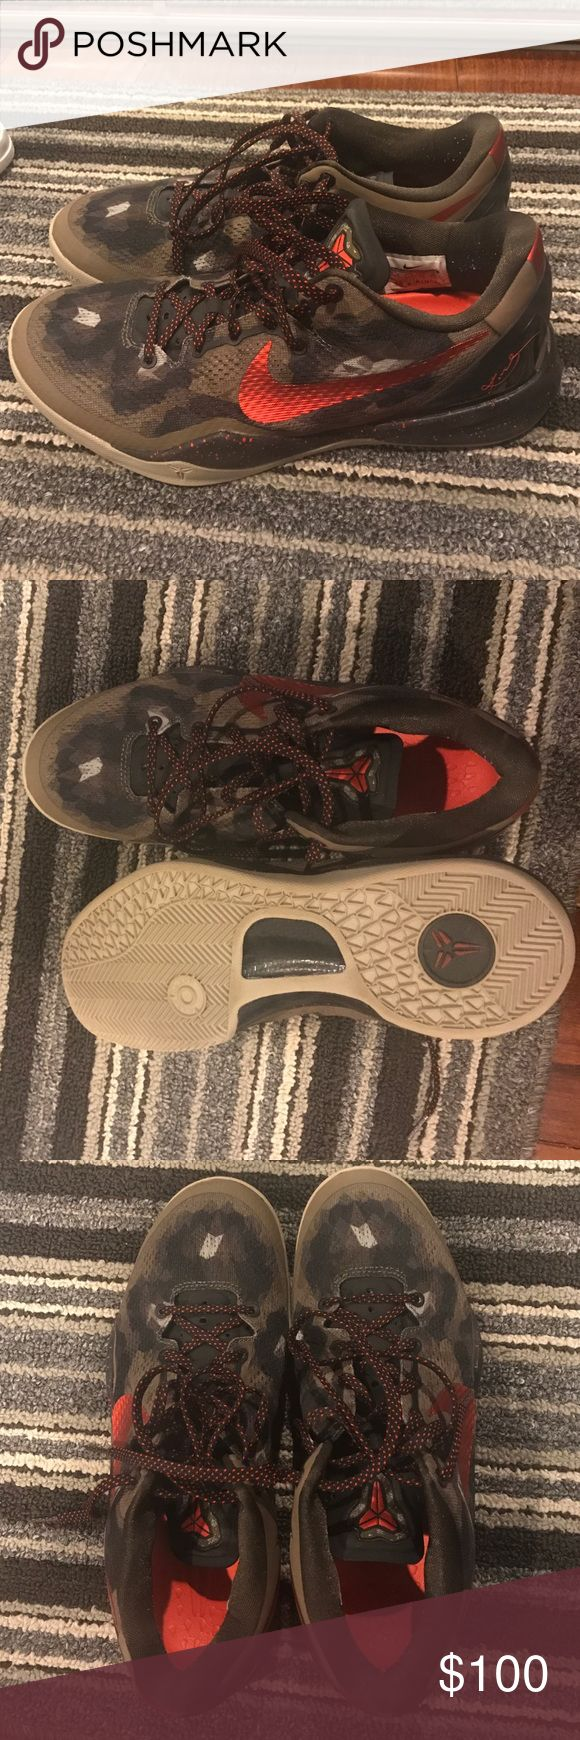 Men's Kobe Bryant Camouflage basketball sneakers Men's Kobe Bryant red and camo basketball sneakers. Size 8.5. Worn a few times but like new, great condition! Nike Shoes Sneakers